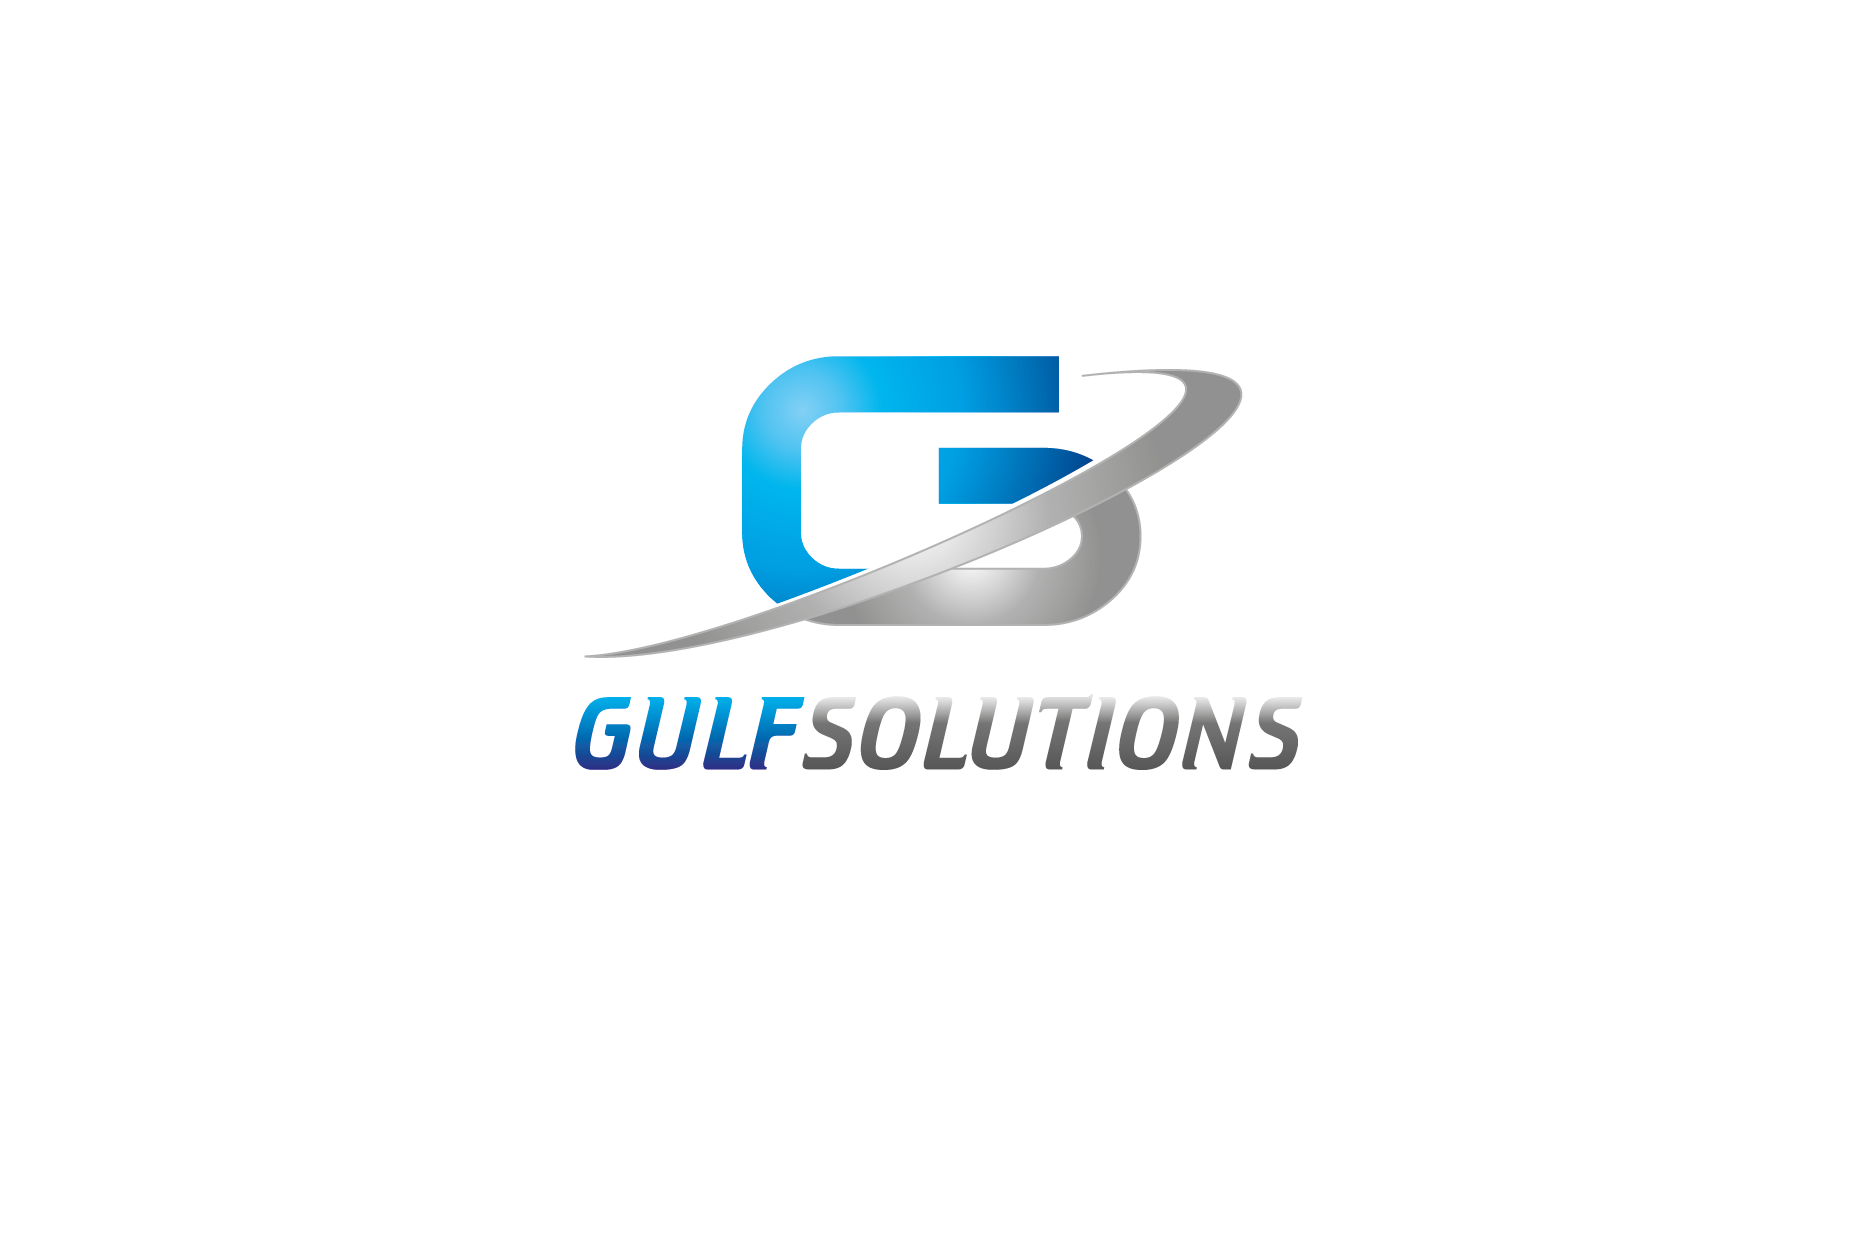 Logo Design by Private User - Entry No. 18 in the Logo Design Contest New Logo Design for Gulf solutions company.